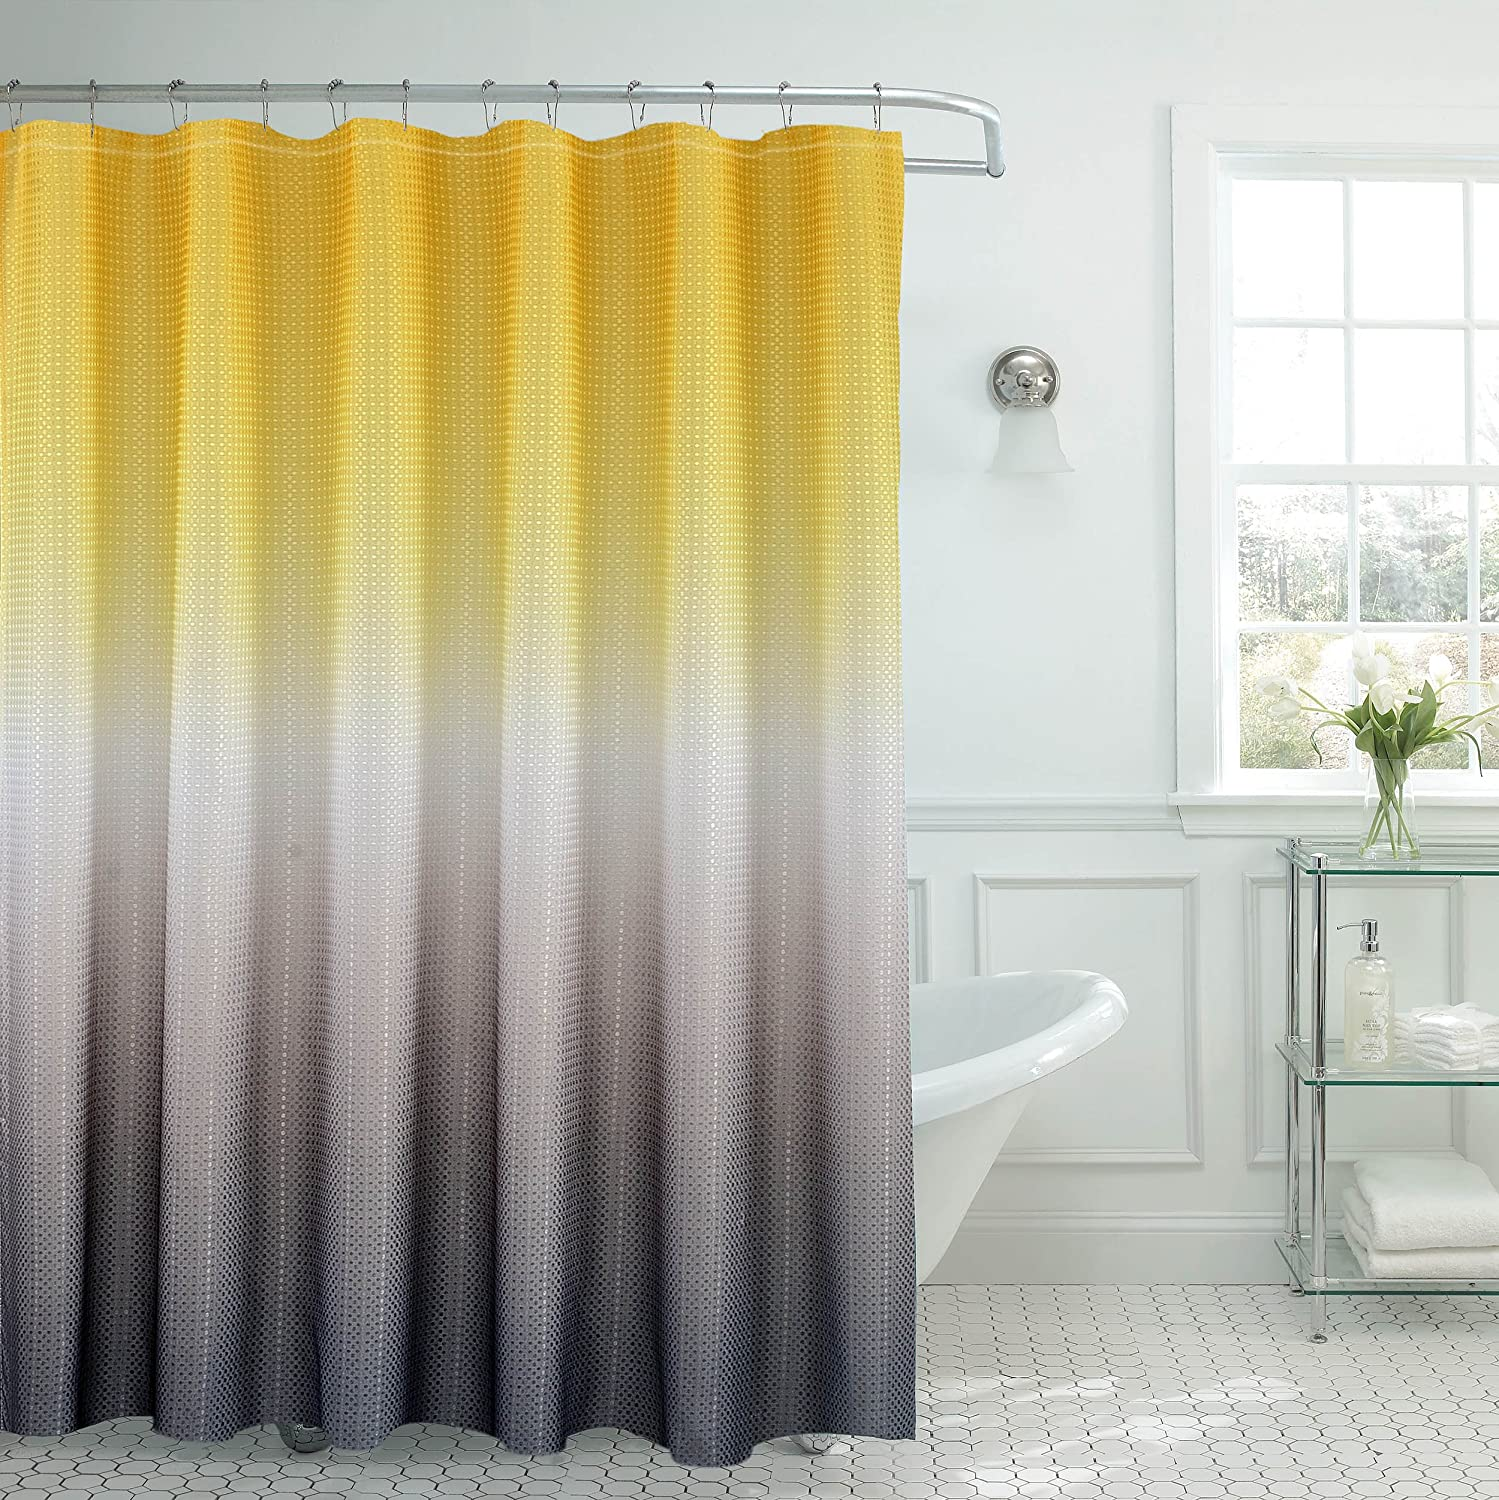 Amazon.com: Creative Home Ideas Ombre Textured Shower Curtain with Beaded Rings, Yellow/Grey: Home & Kitchen